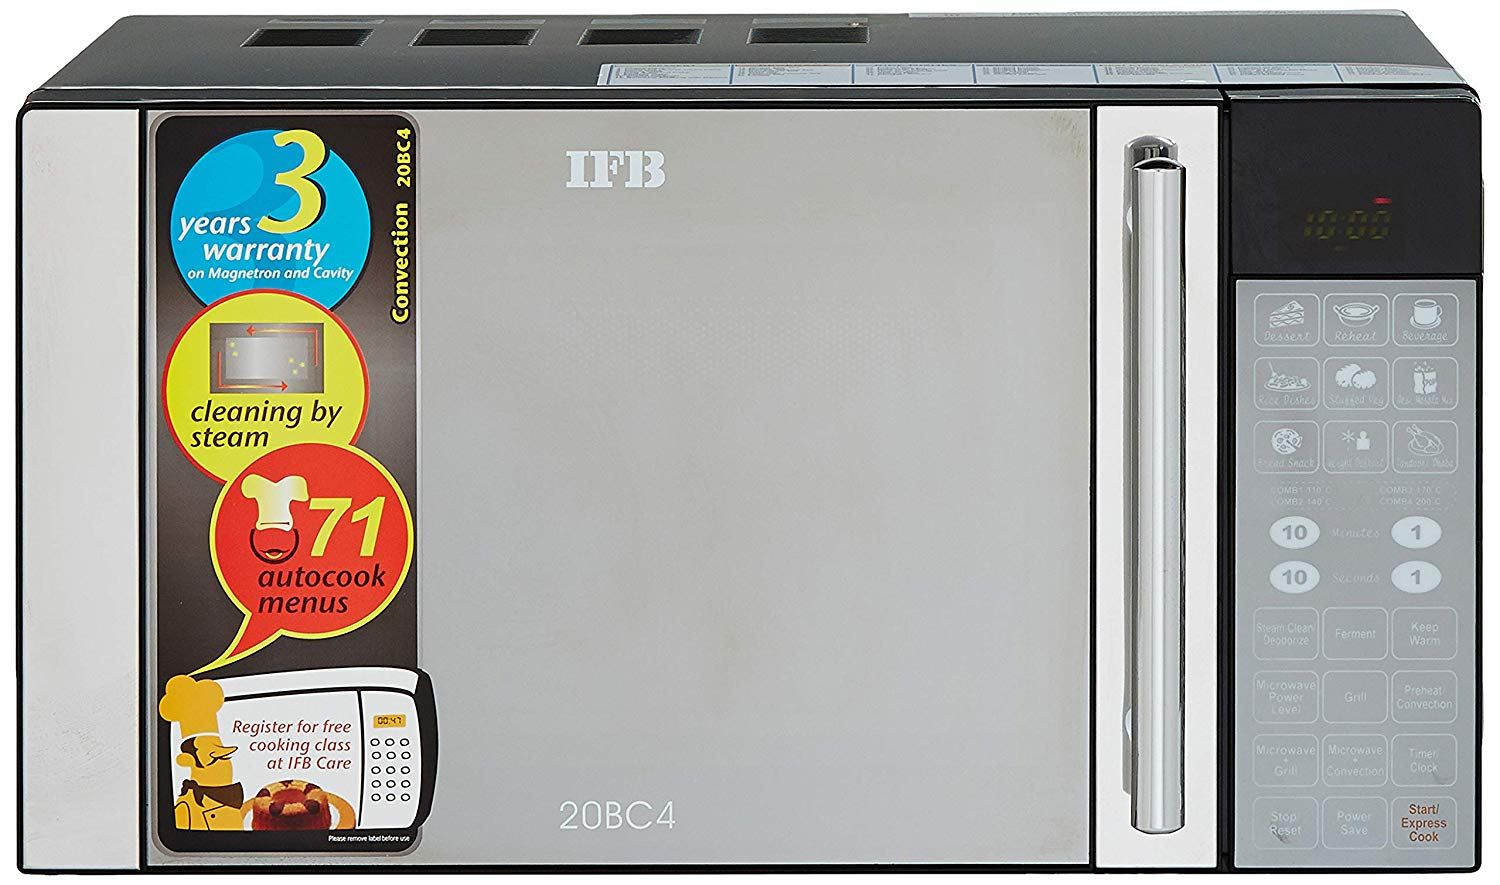 IFB 20BC4 20 Liter Convection Microwave Oven